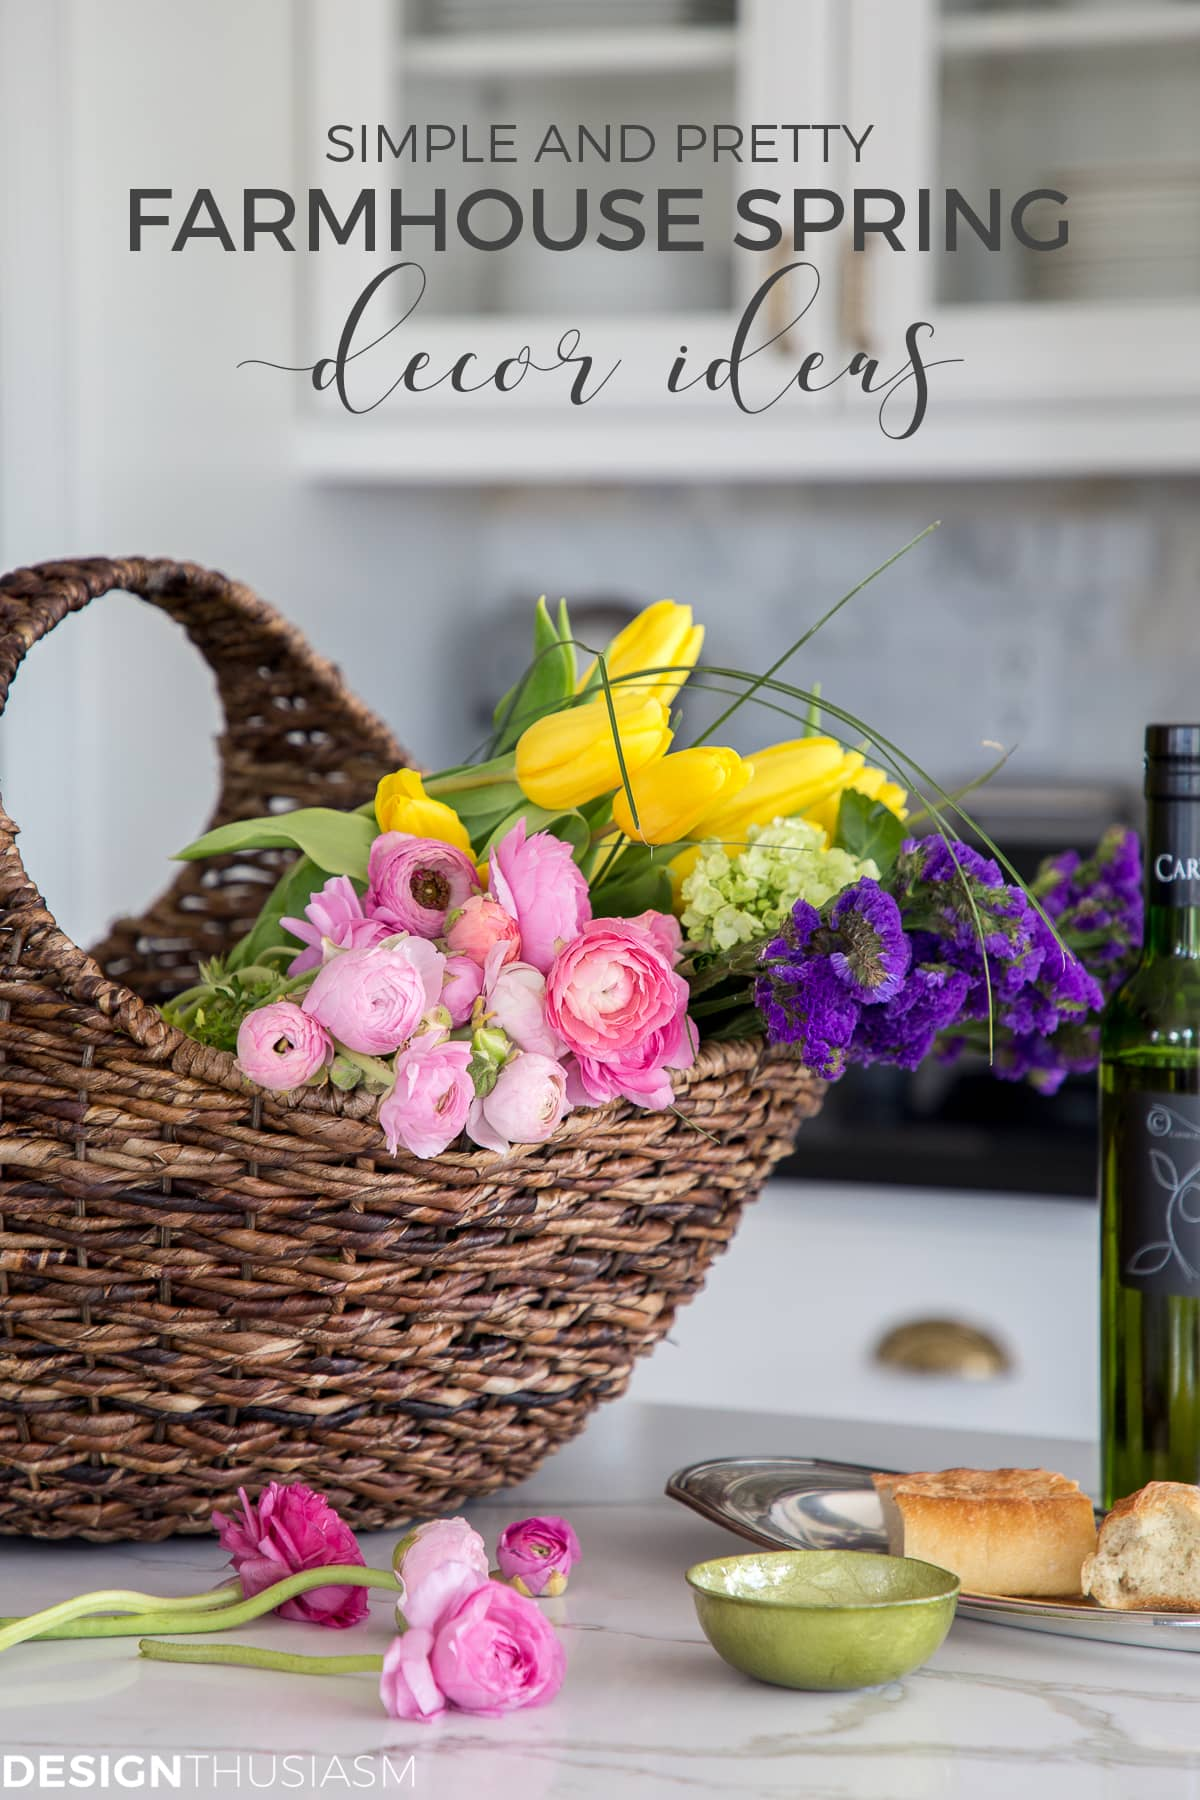 farmhouse spring decor ideas basket of flowers